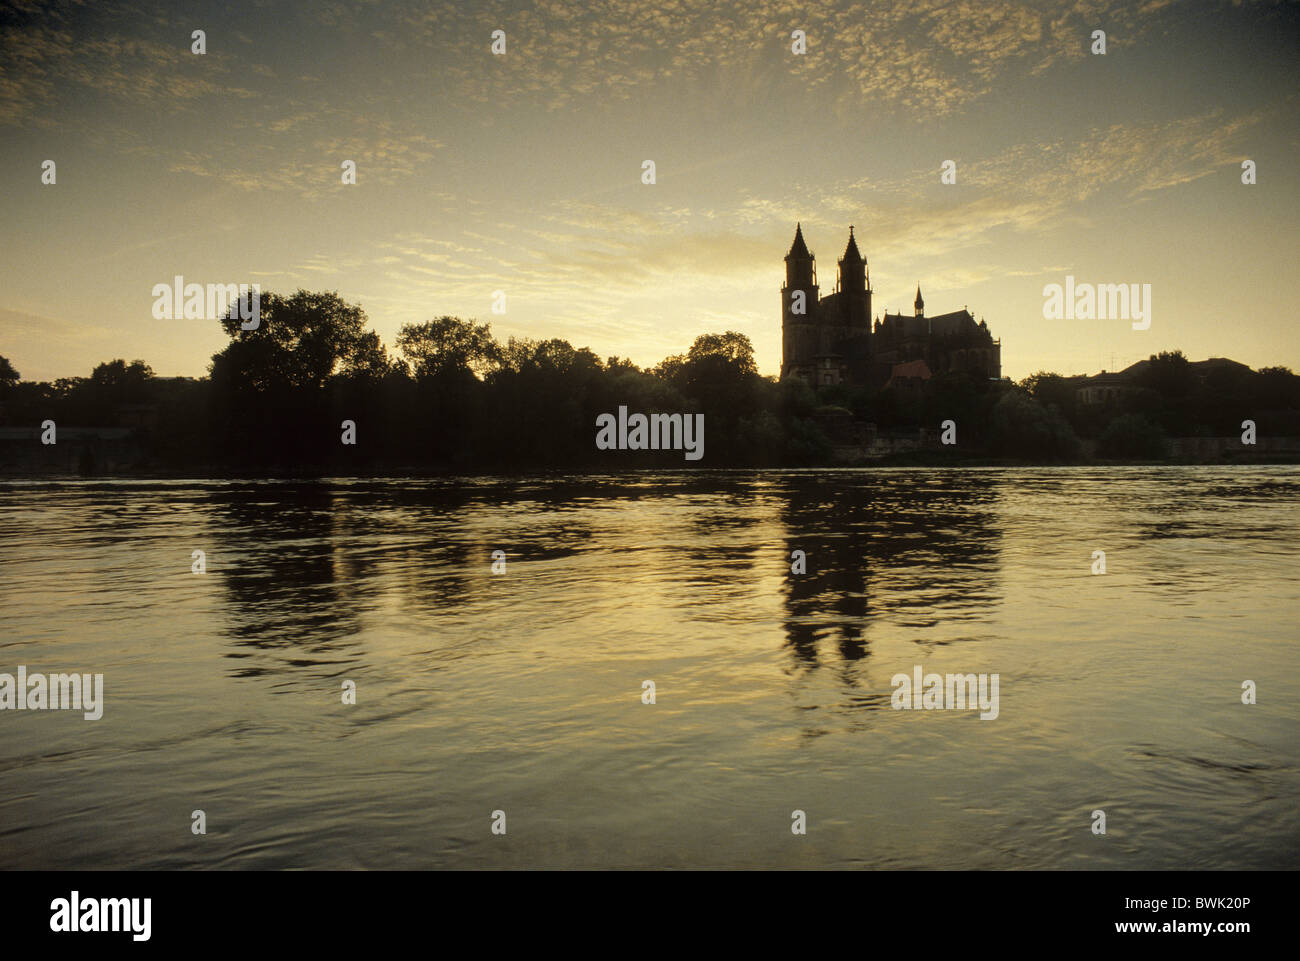 Magdeburg Cathedral, panoramic view from the river Elbe, Magdeburg, Saxony-Anhalt, Germany - Stock Image